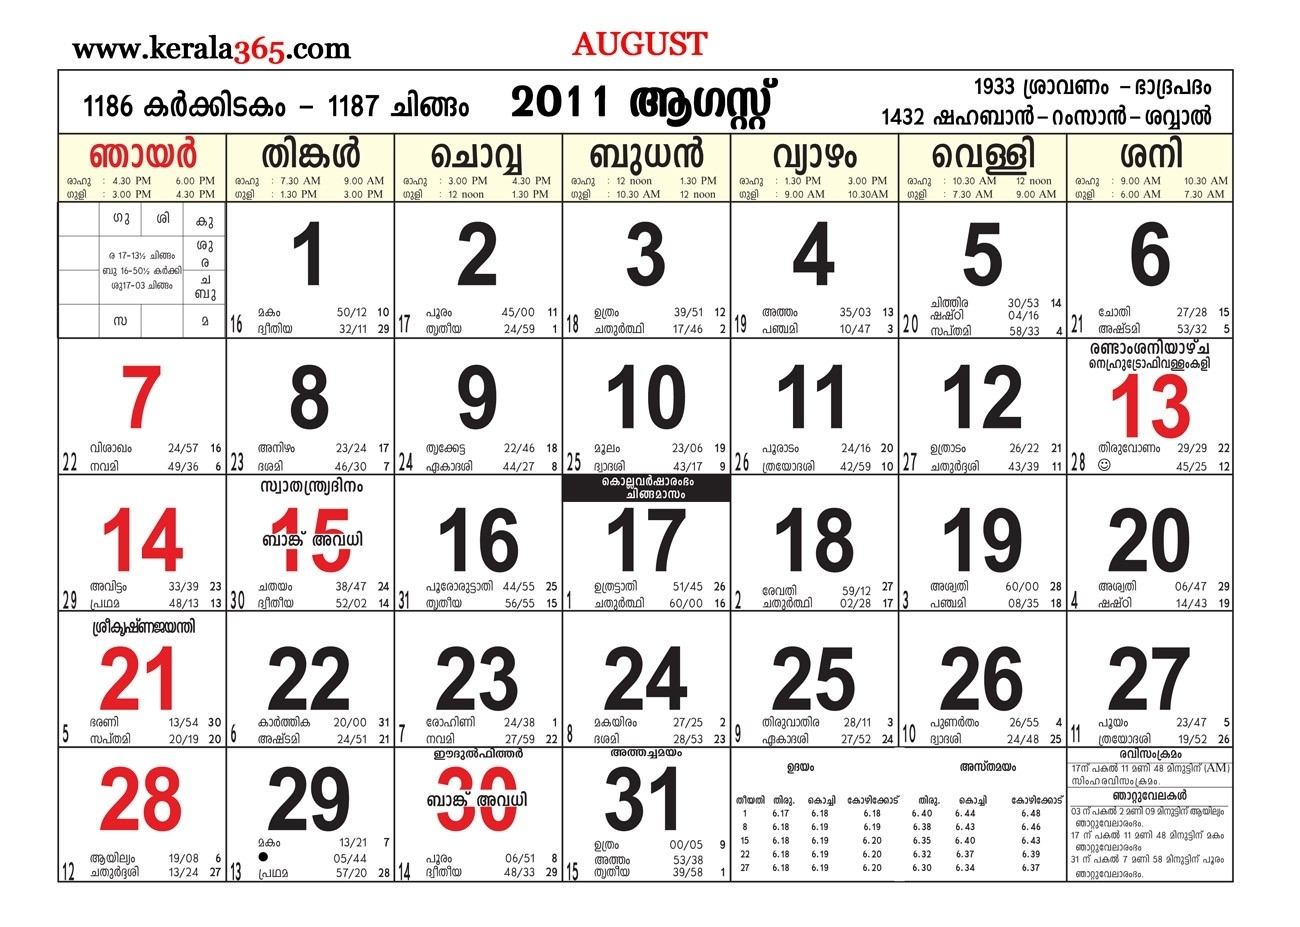 Malayalam Calender August 2011 Kerala365 At August Calendar 2011 for Malayalam Calender Of This Month